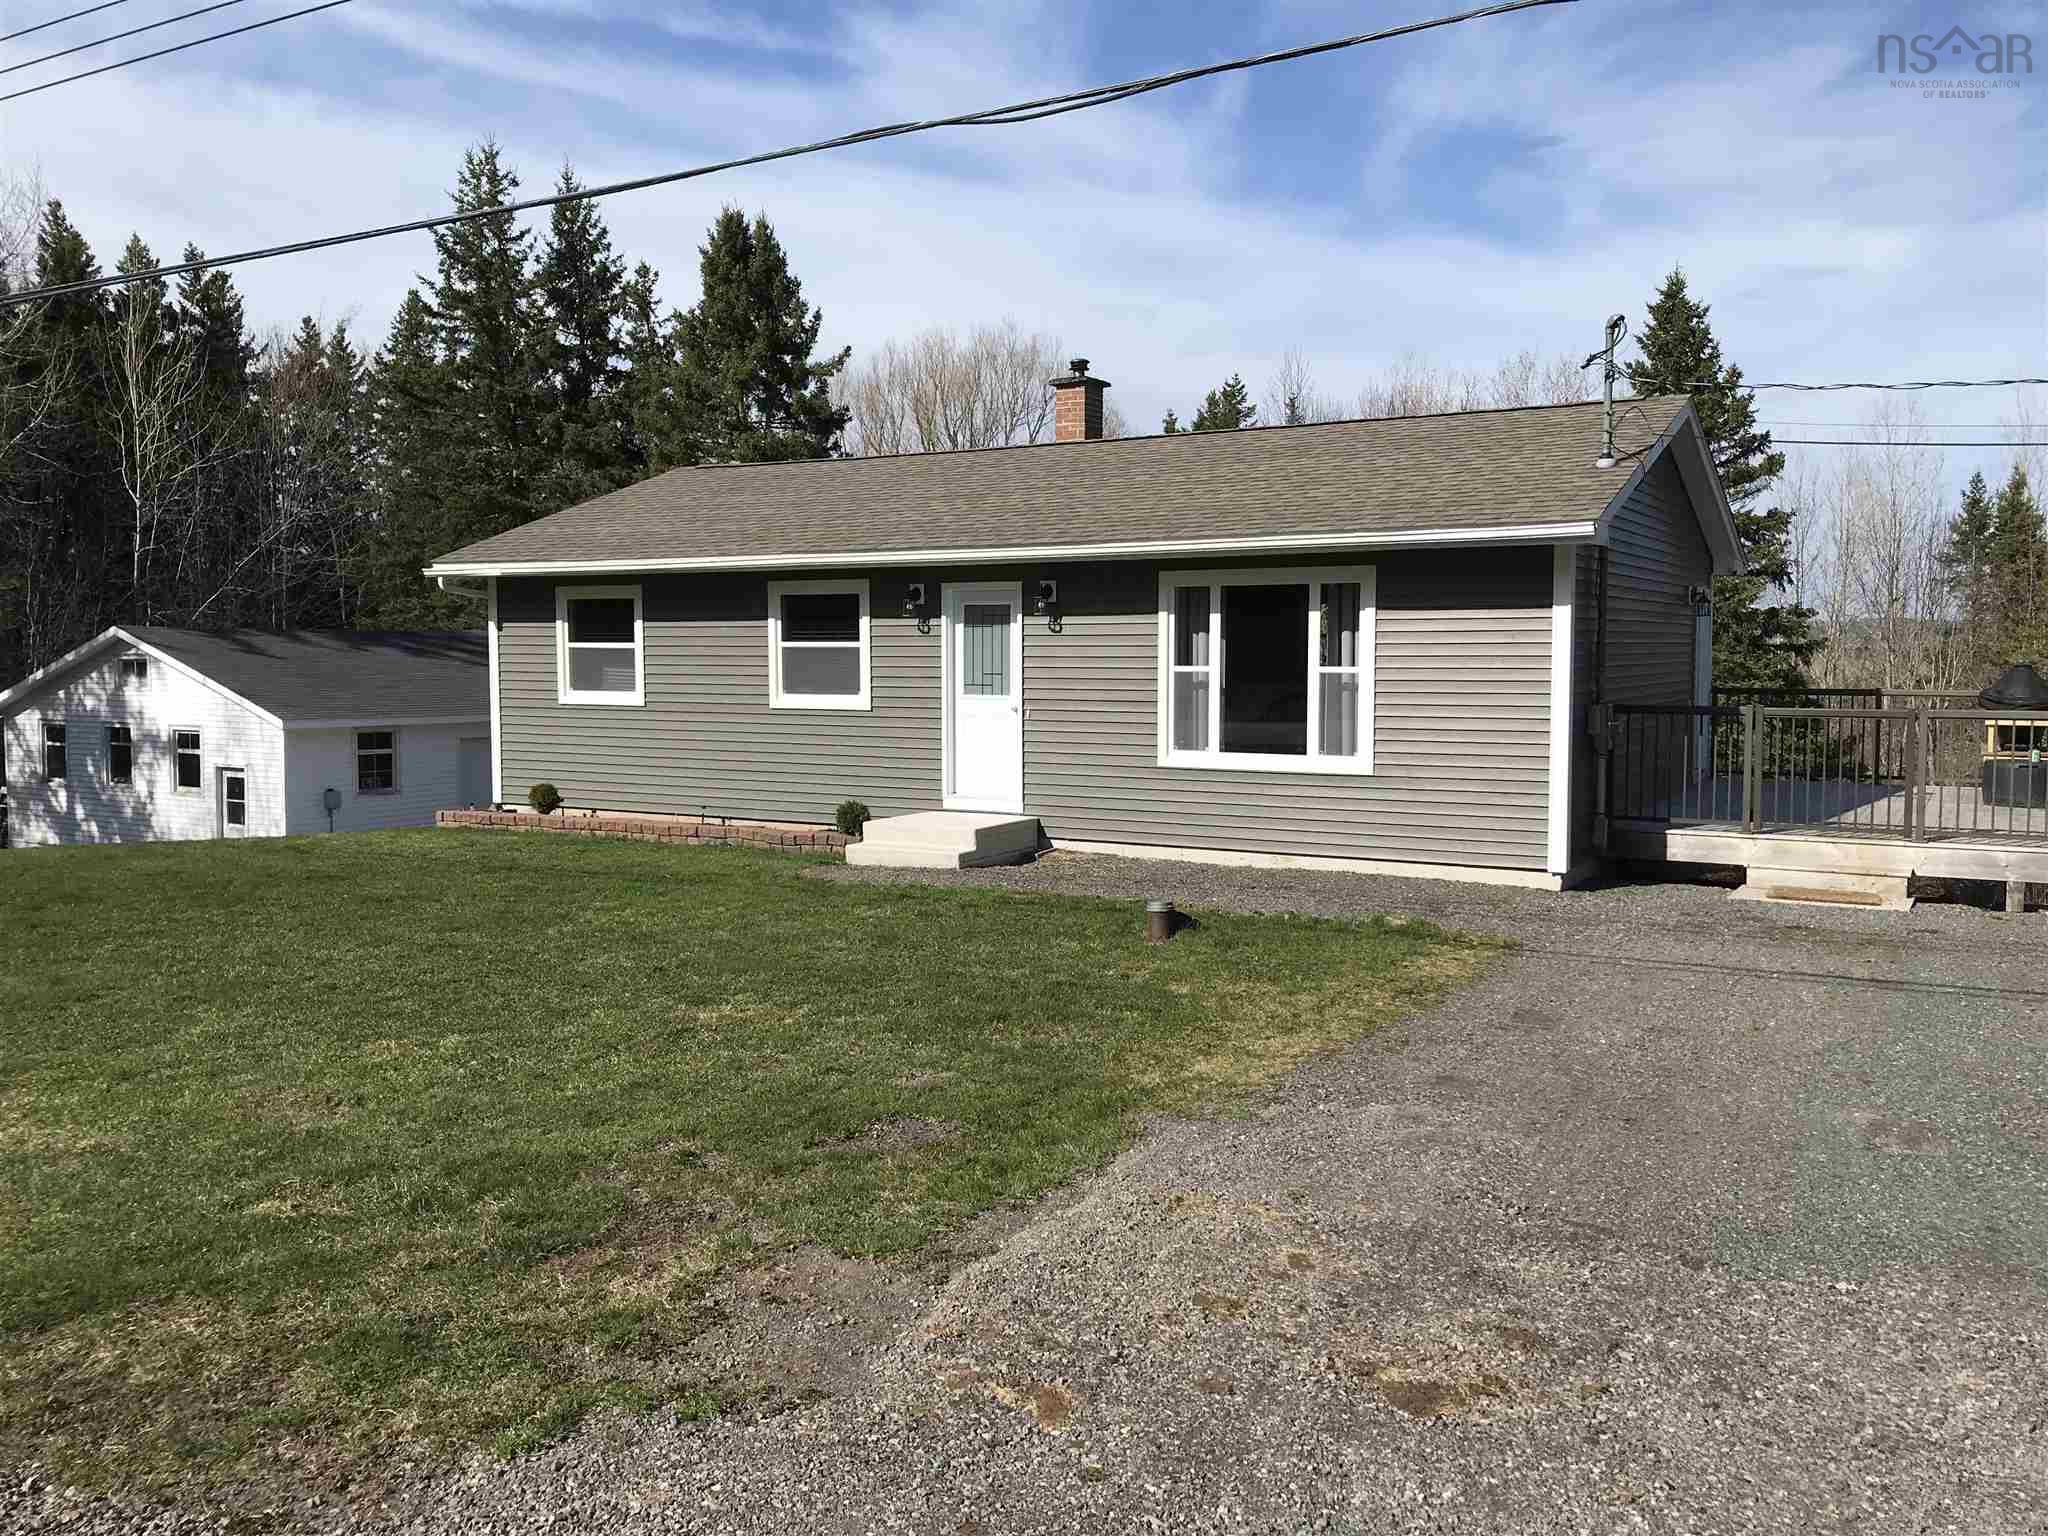 60 Fourth Street, Mclellans Brook, Pictou, NS, United States B2H 5C7, 4 Bedrooms Bedrooms, ,2 BathroomsBathrooms,For Sale,60 Fourth Street,202109330